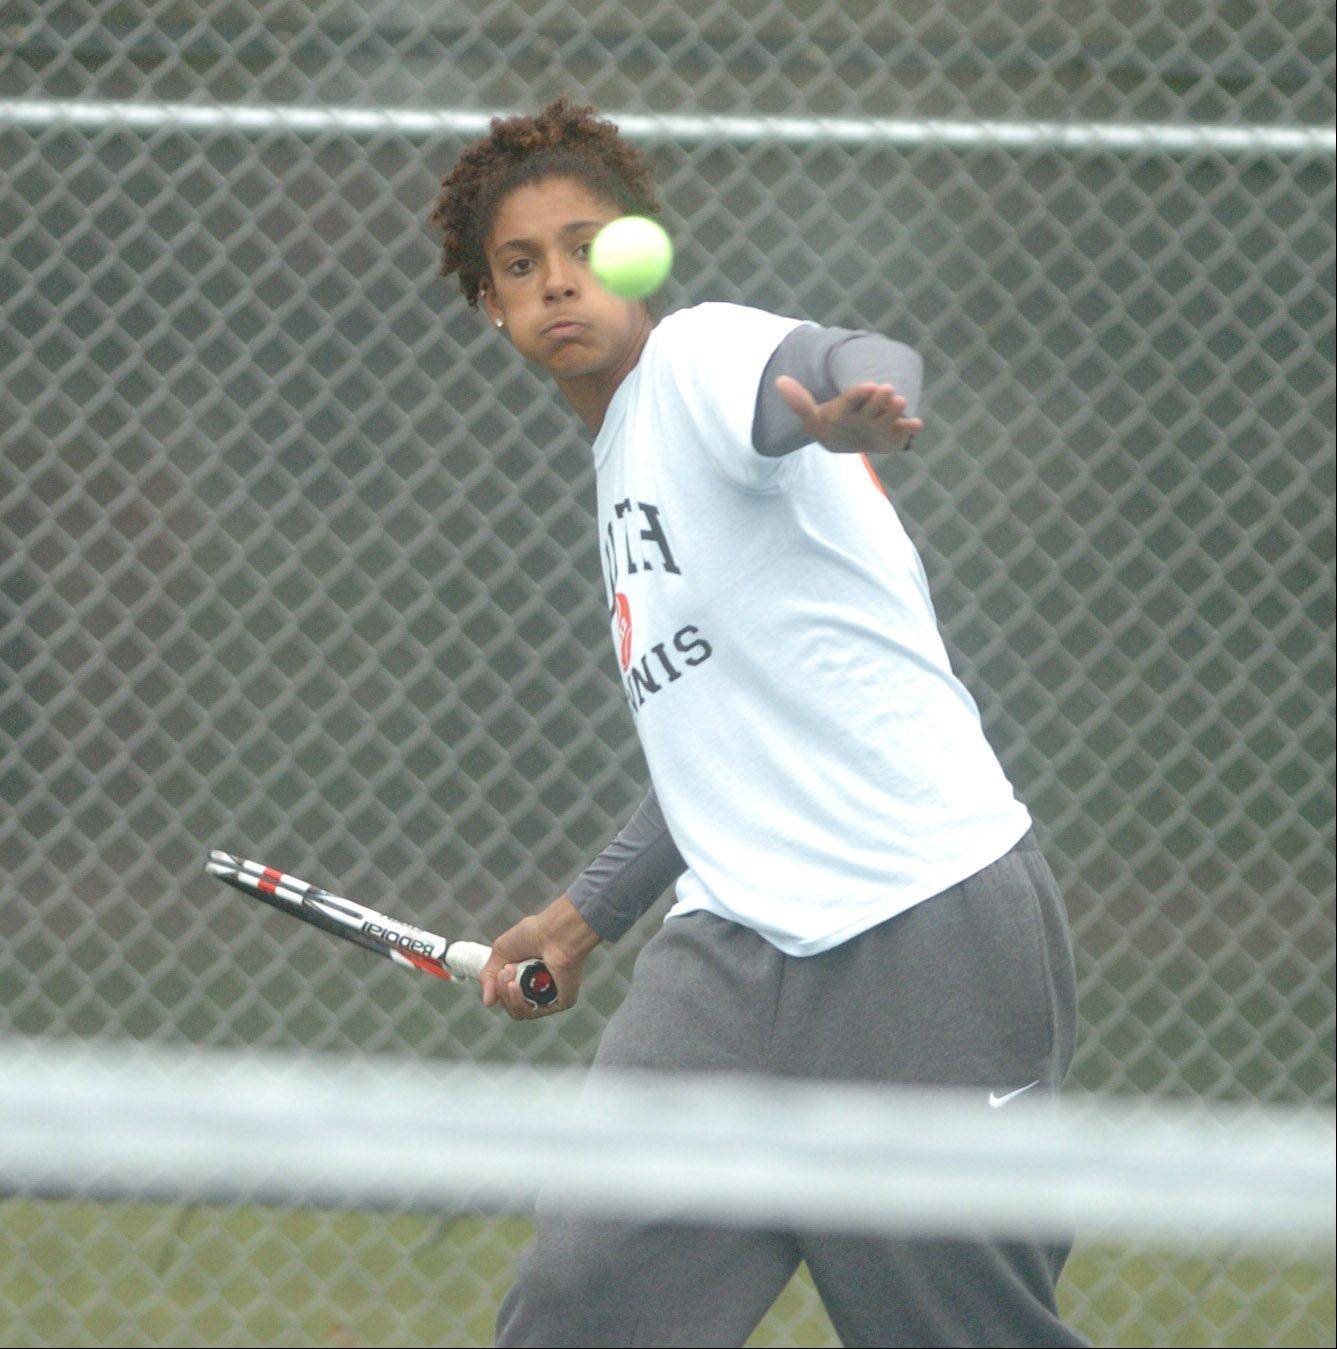 Keisha Clousing of Wheaton Warrenville South takes part in the Naperville North girls tennis sectional at Naperville North High School Saturday.